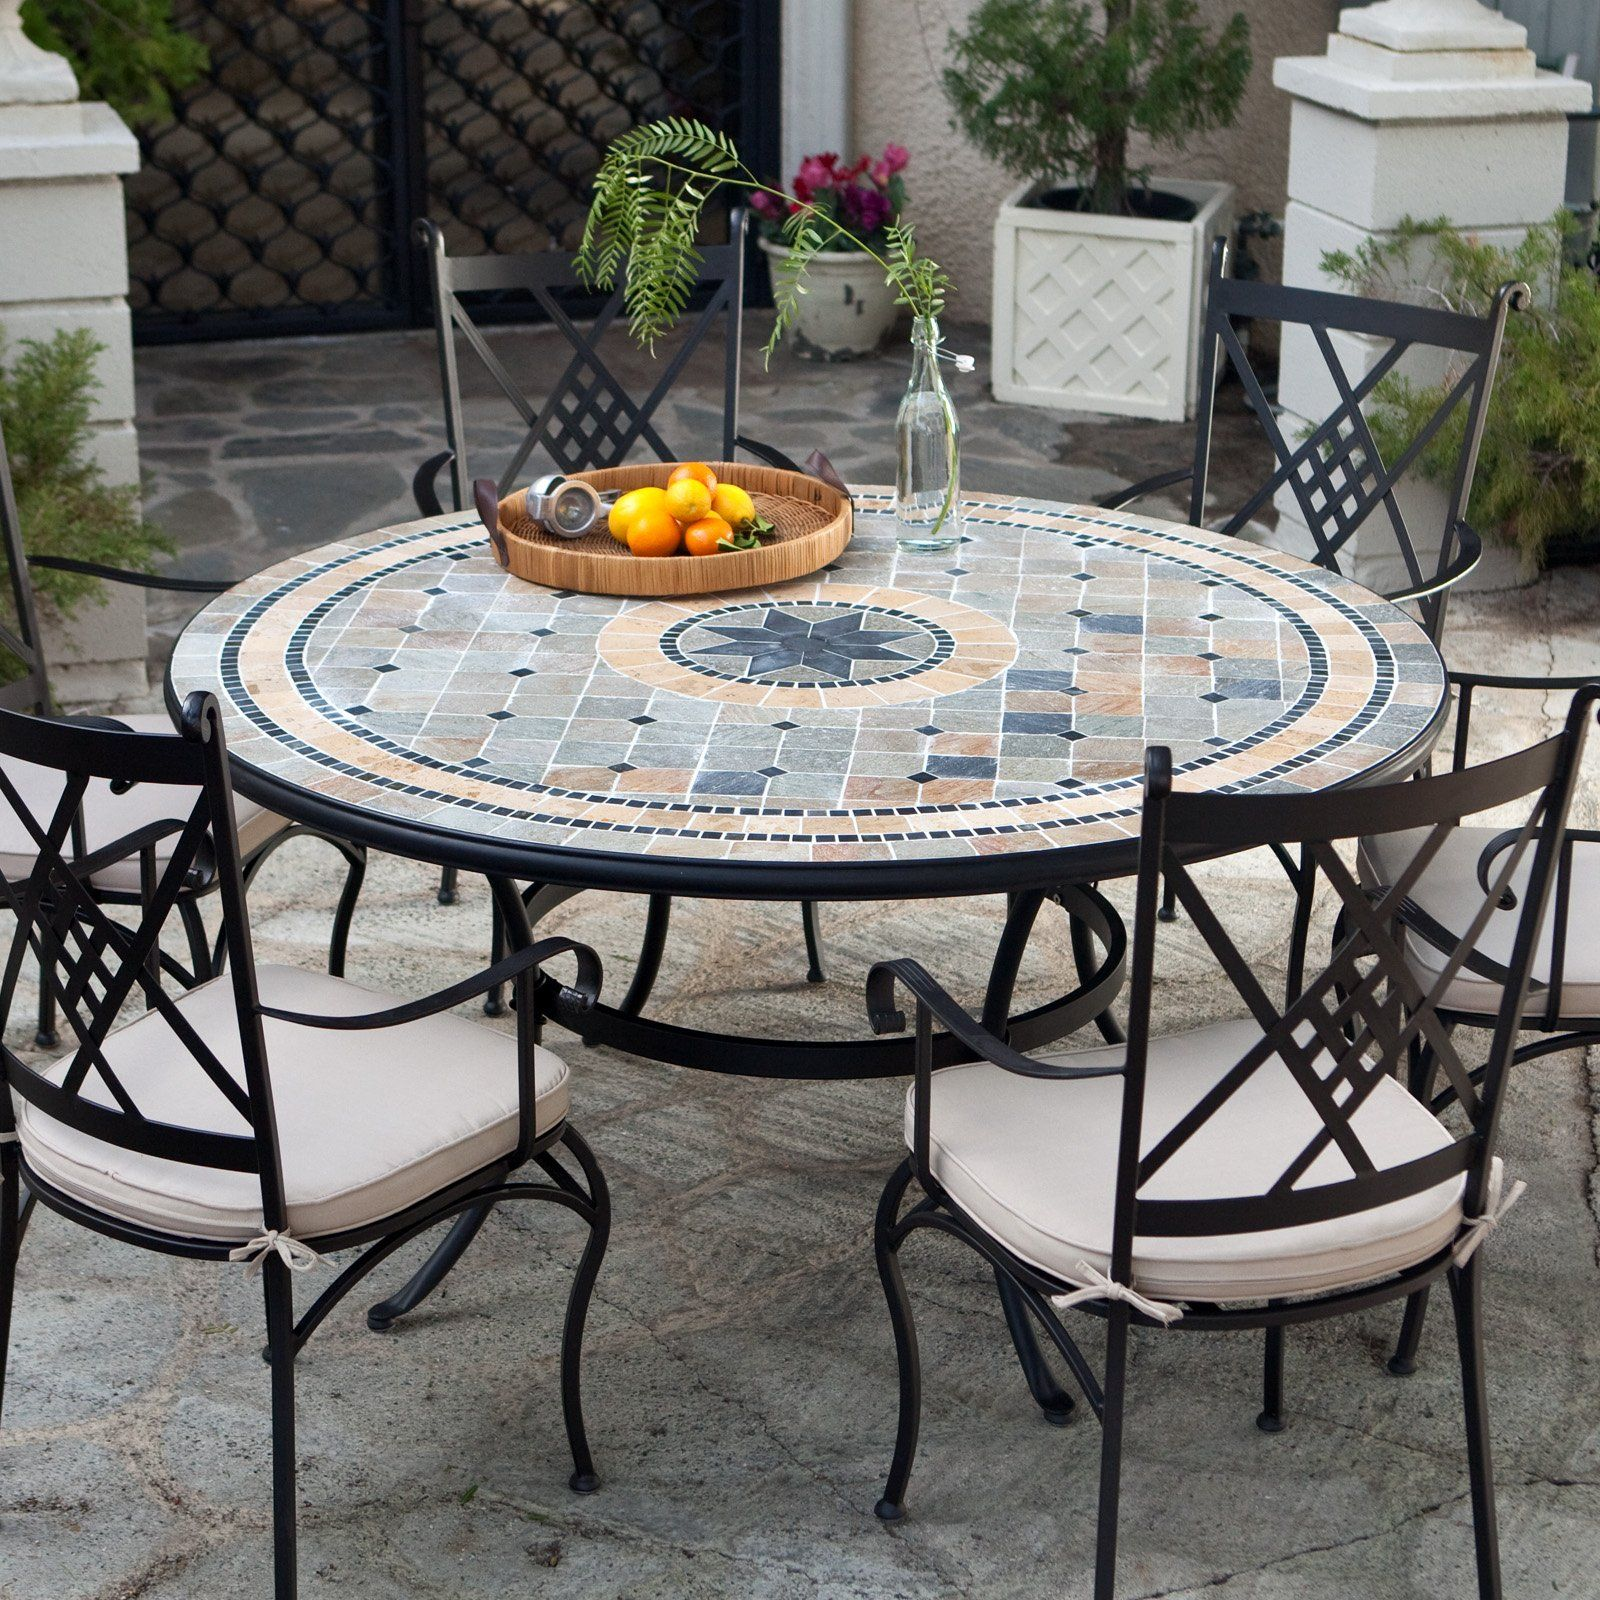 Palazetto Barcelona Round Mosaic Patio Dining Set - Seats 6 - contemporary - patio furniture and outdoor furniture - Hayneedle & Have to have it. Palazetto Barcelona 60-in. Round Mosaic Patio ...